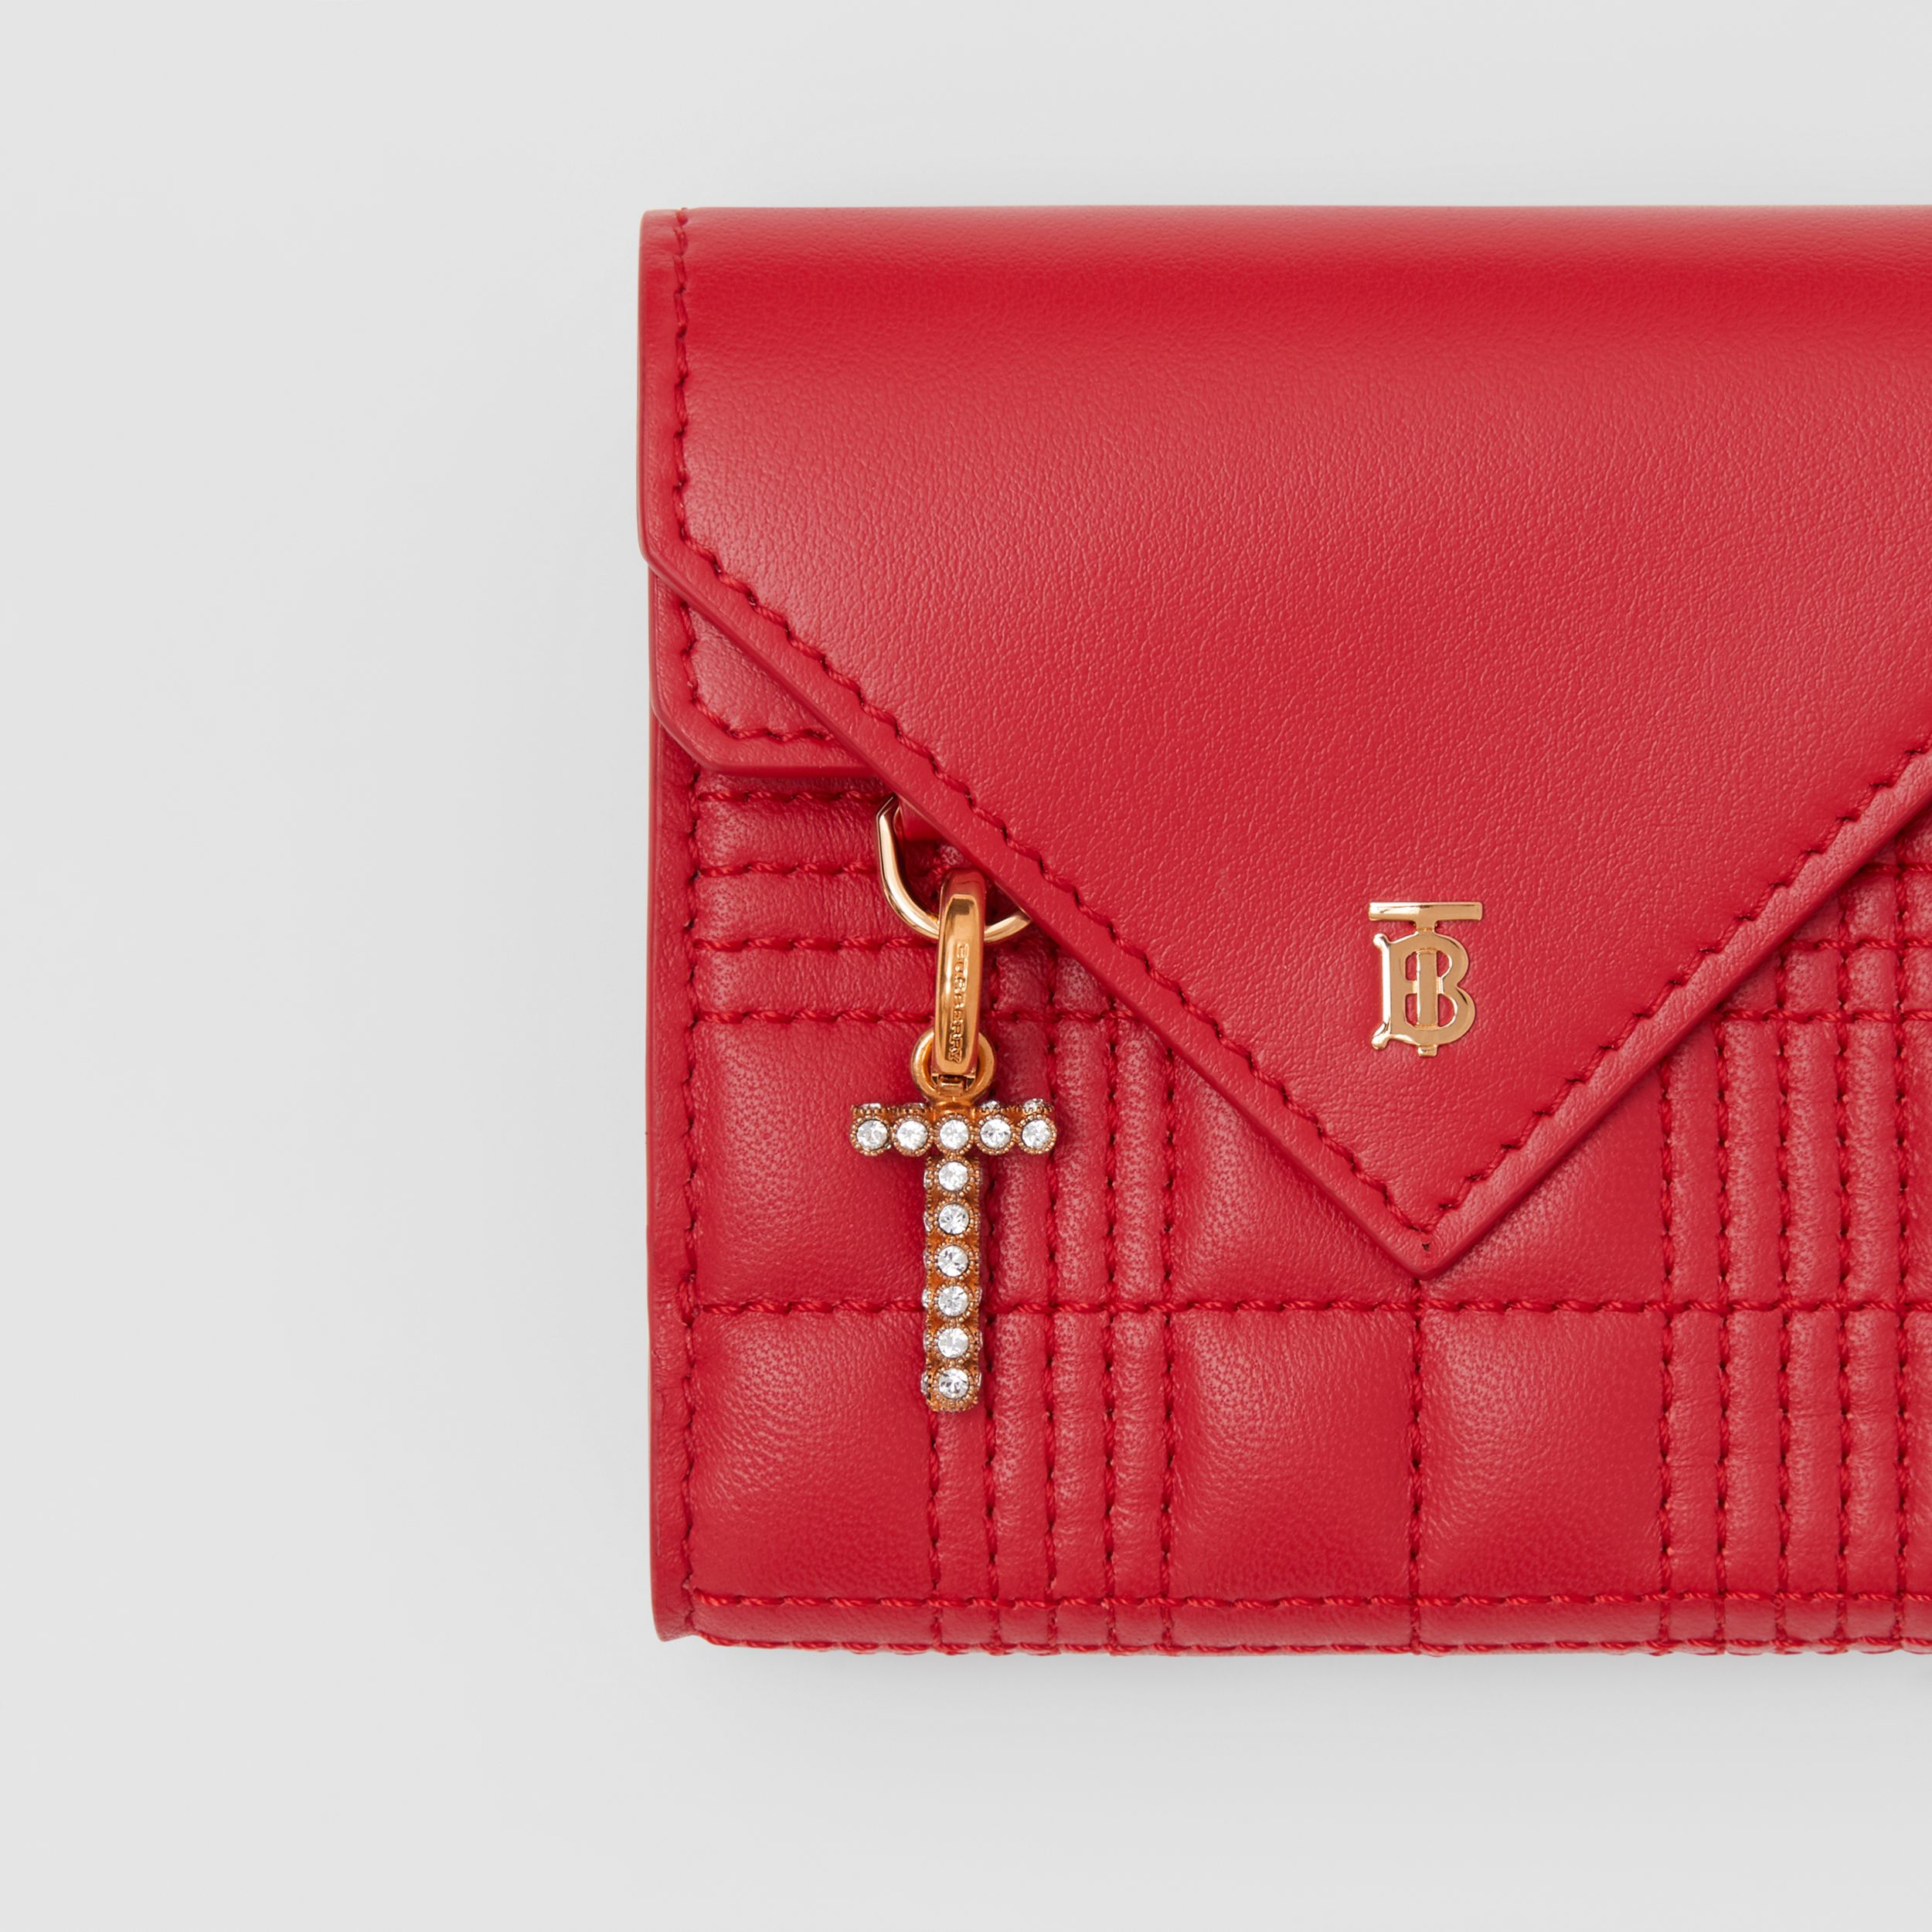 Quilted Lambskin Folding Wallet in Bright Red - Women | Burberry - 2